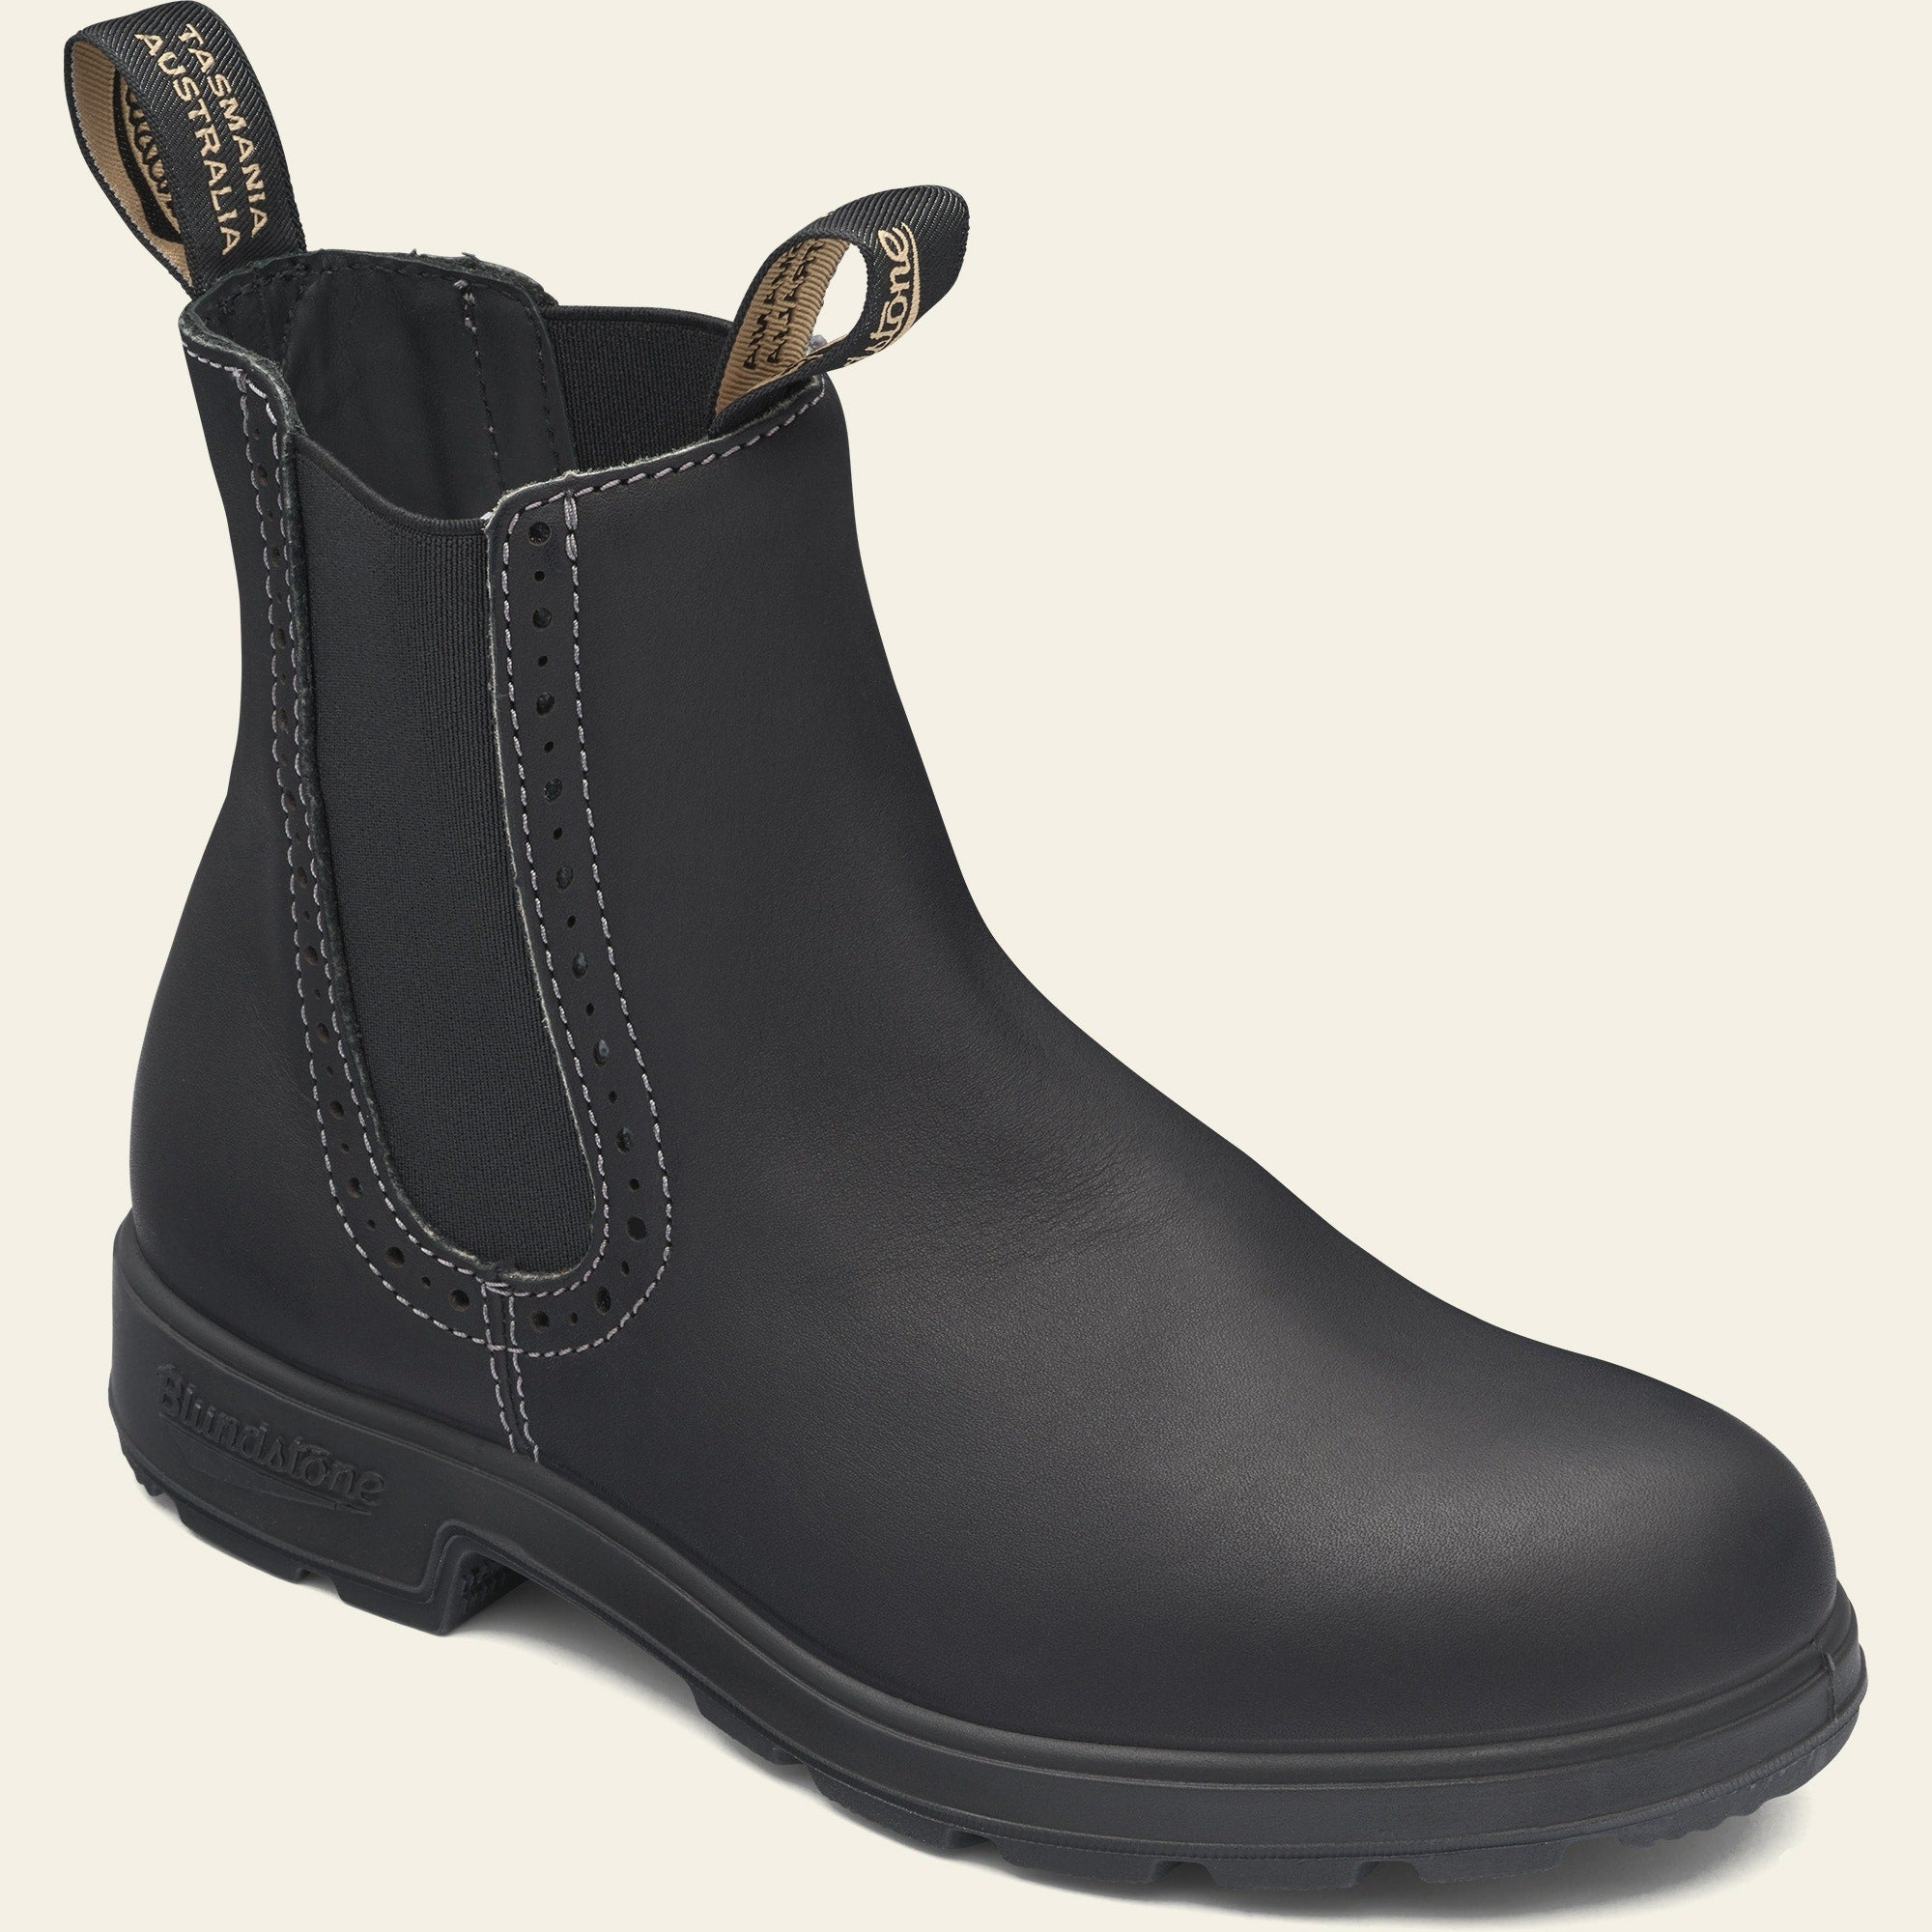 WOMENS ELASTIC SIDED BOOT